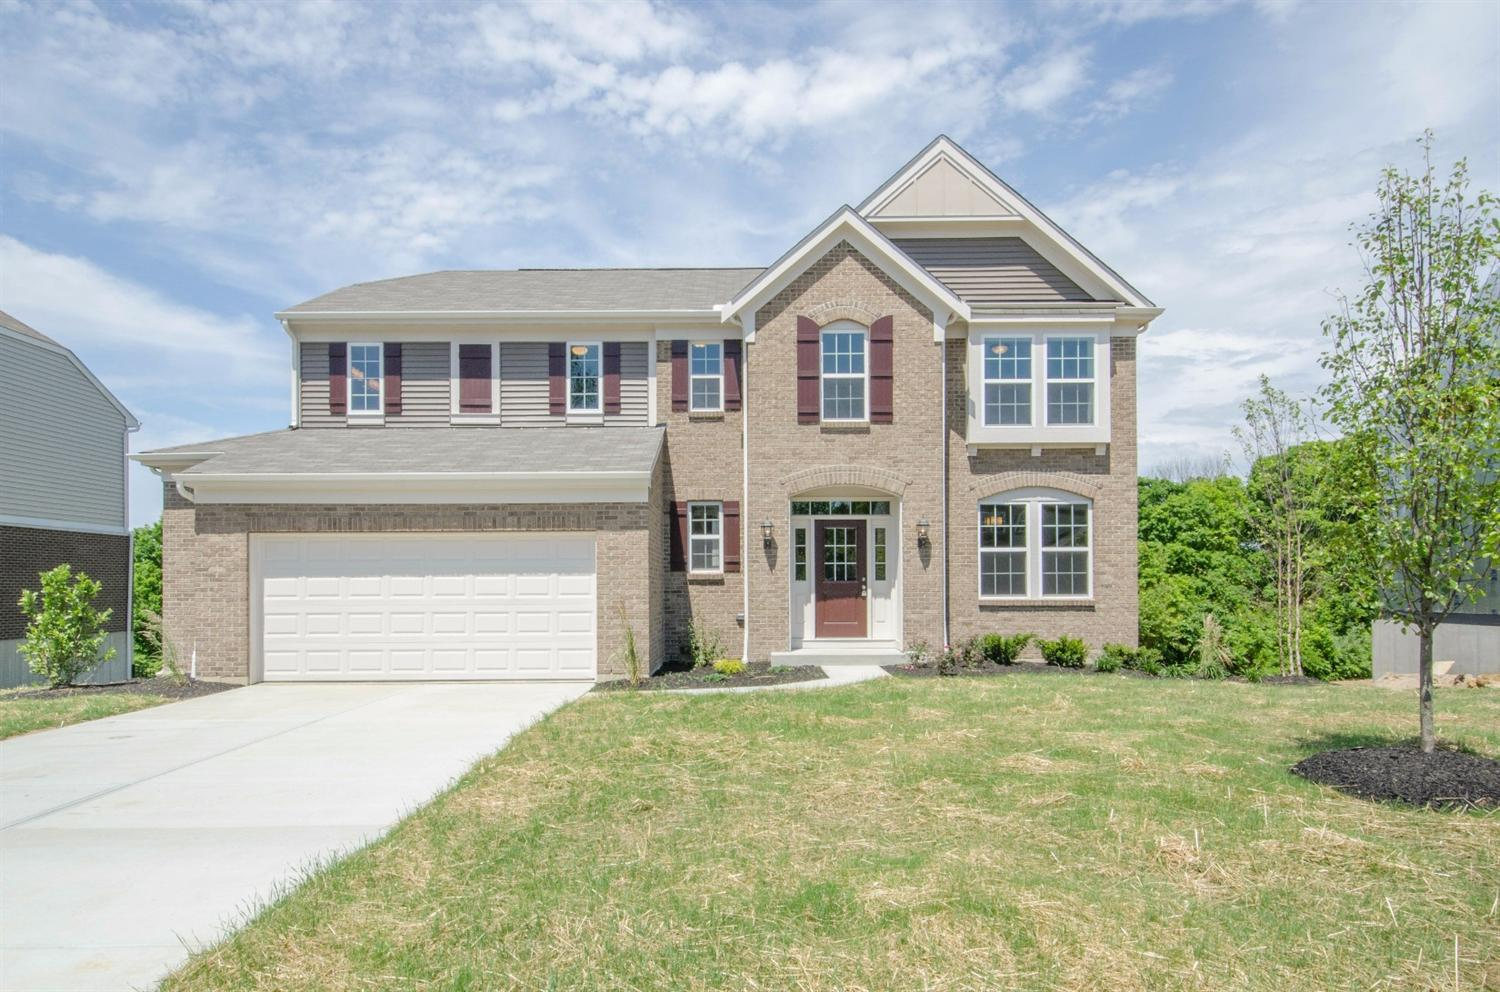 Photo 1 for 4450 Silversmith Ln Independence, KY 41051